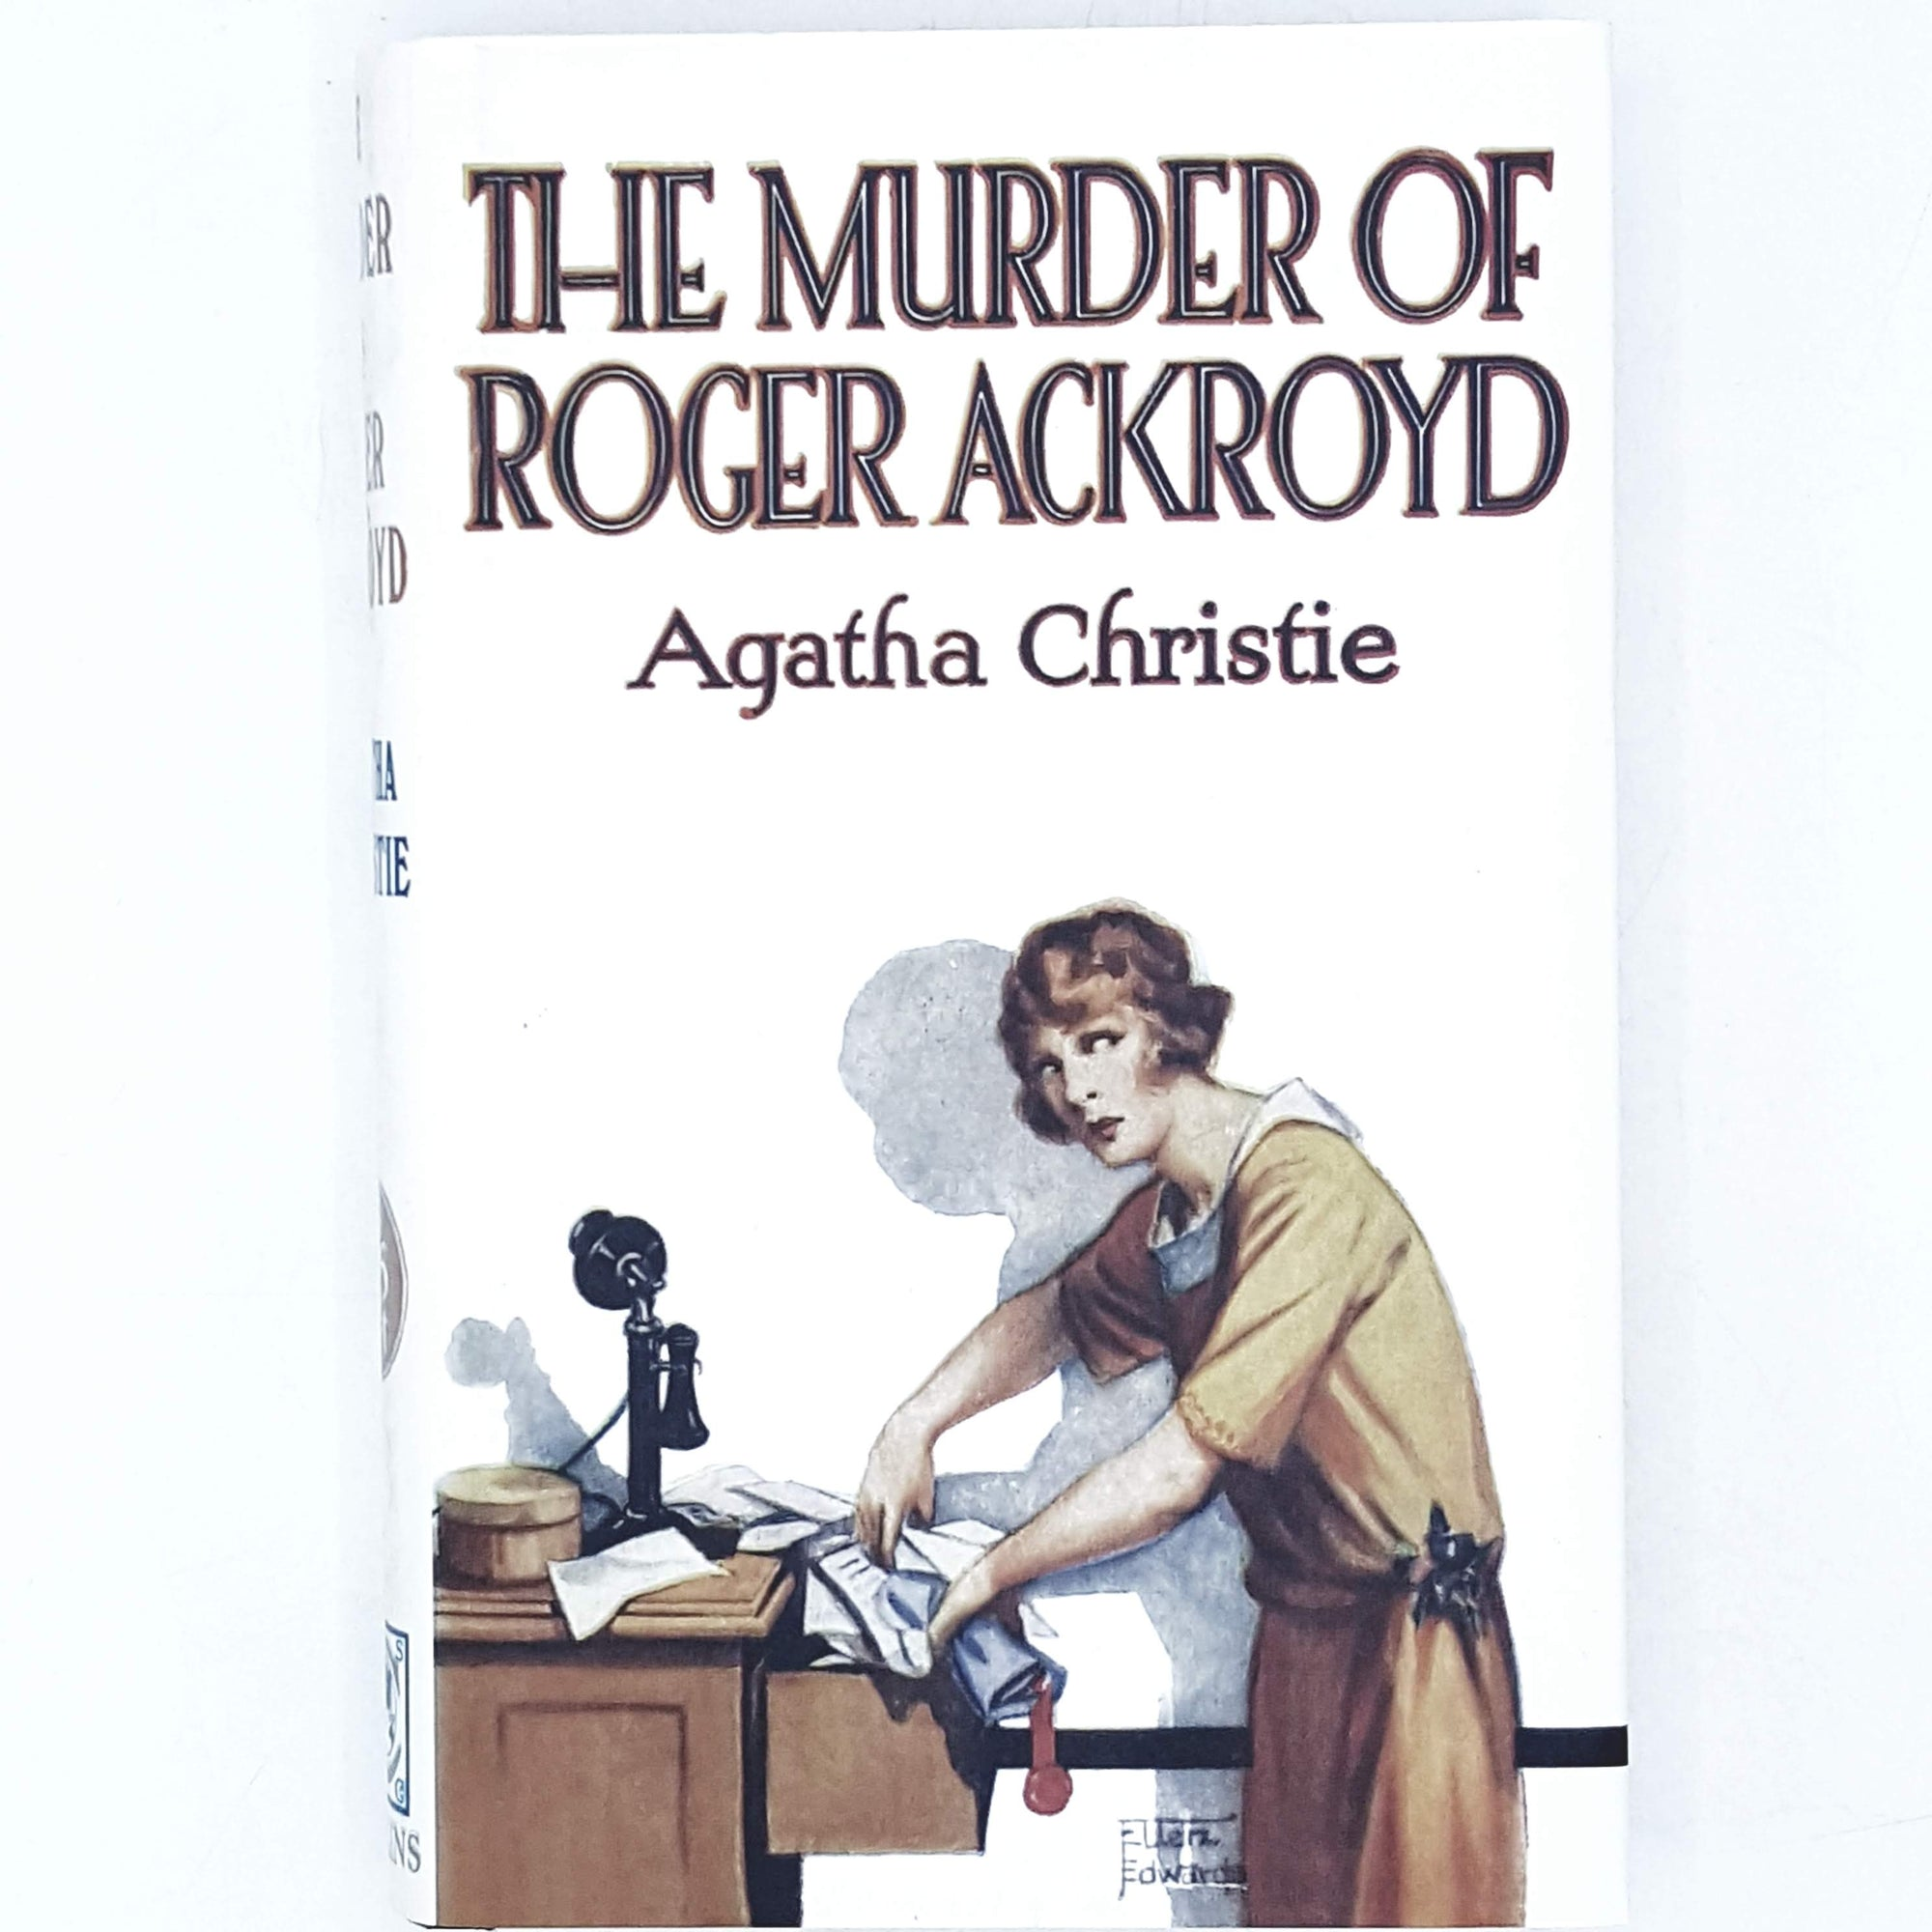 Agatha Christie's The Murder of Roger Ackroyd